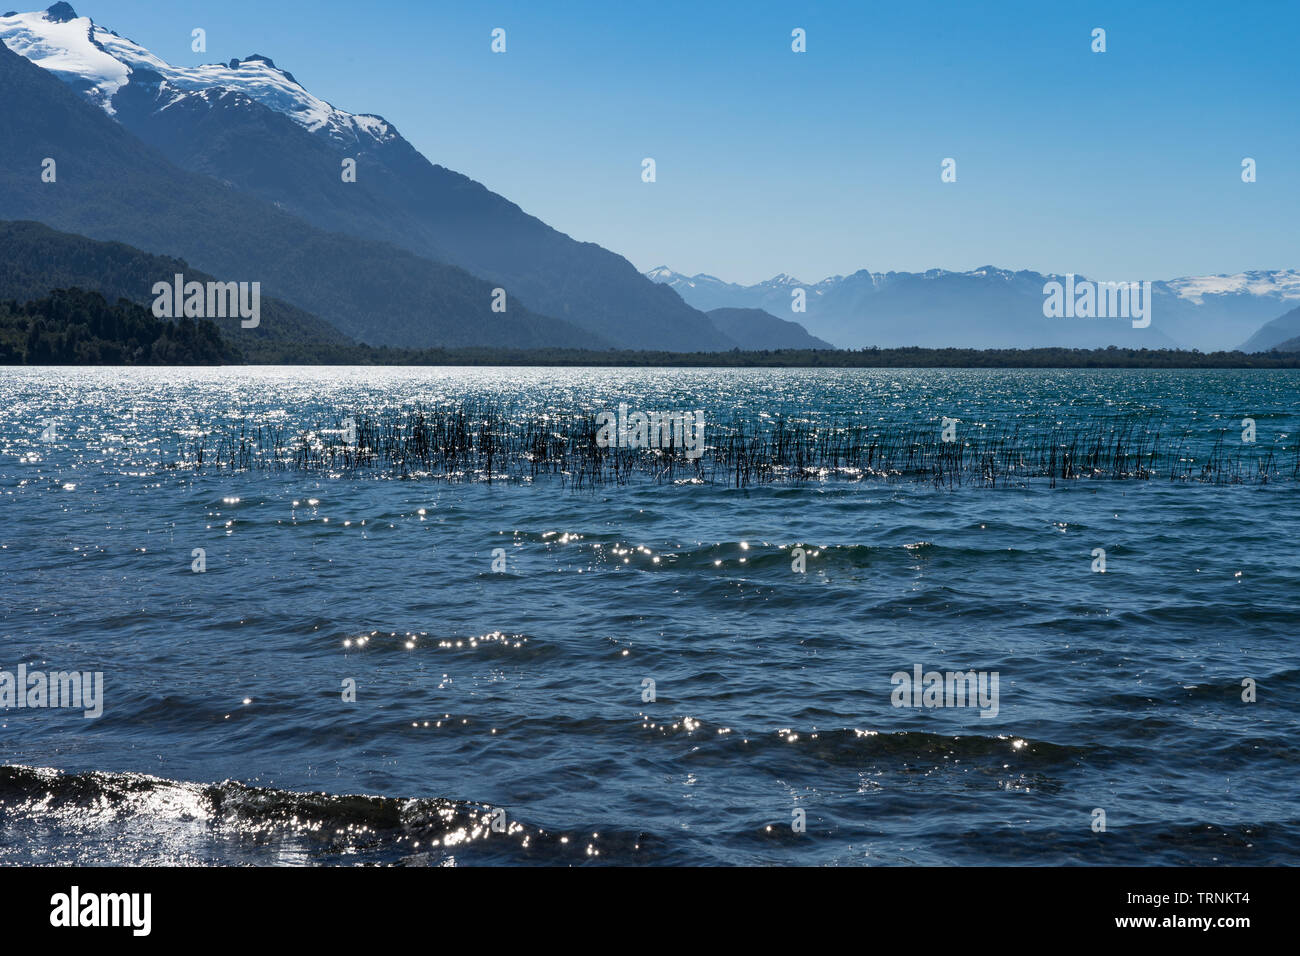 The tranquil waters of lake Yelcho sparkle in the sunshine, Northern Patagonia, Chile - Stock Image